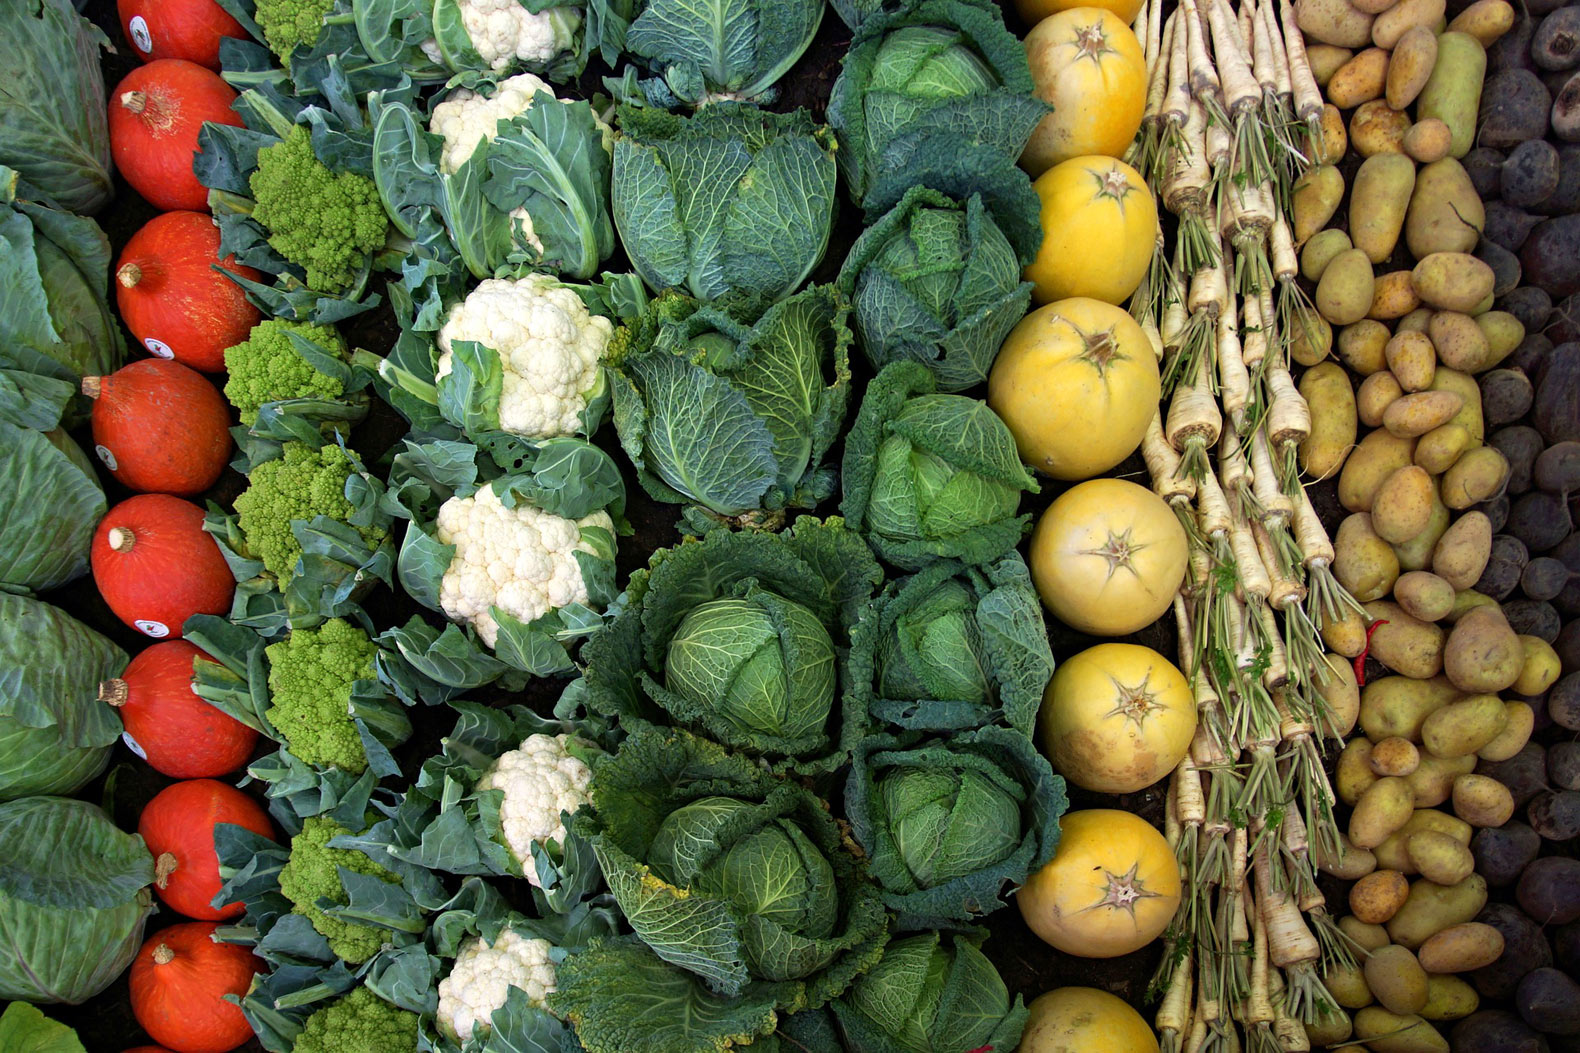 Follow this diet for both personal and planetary health